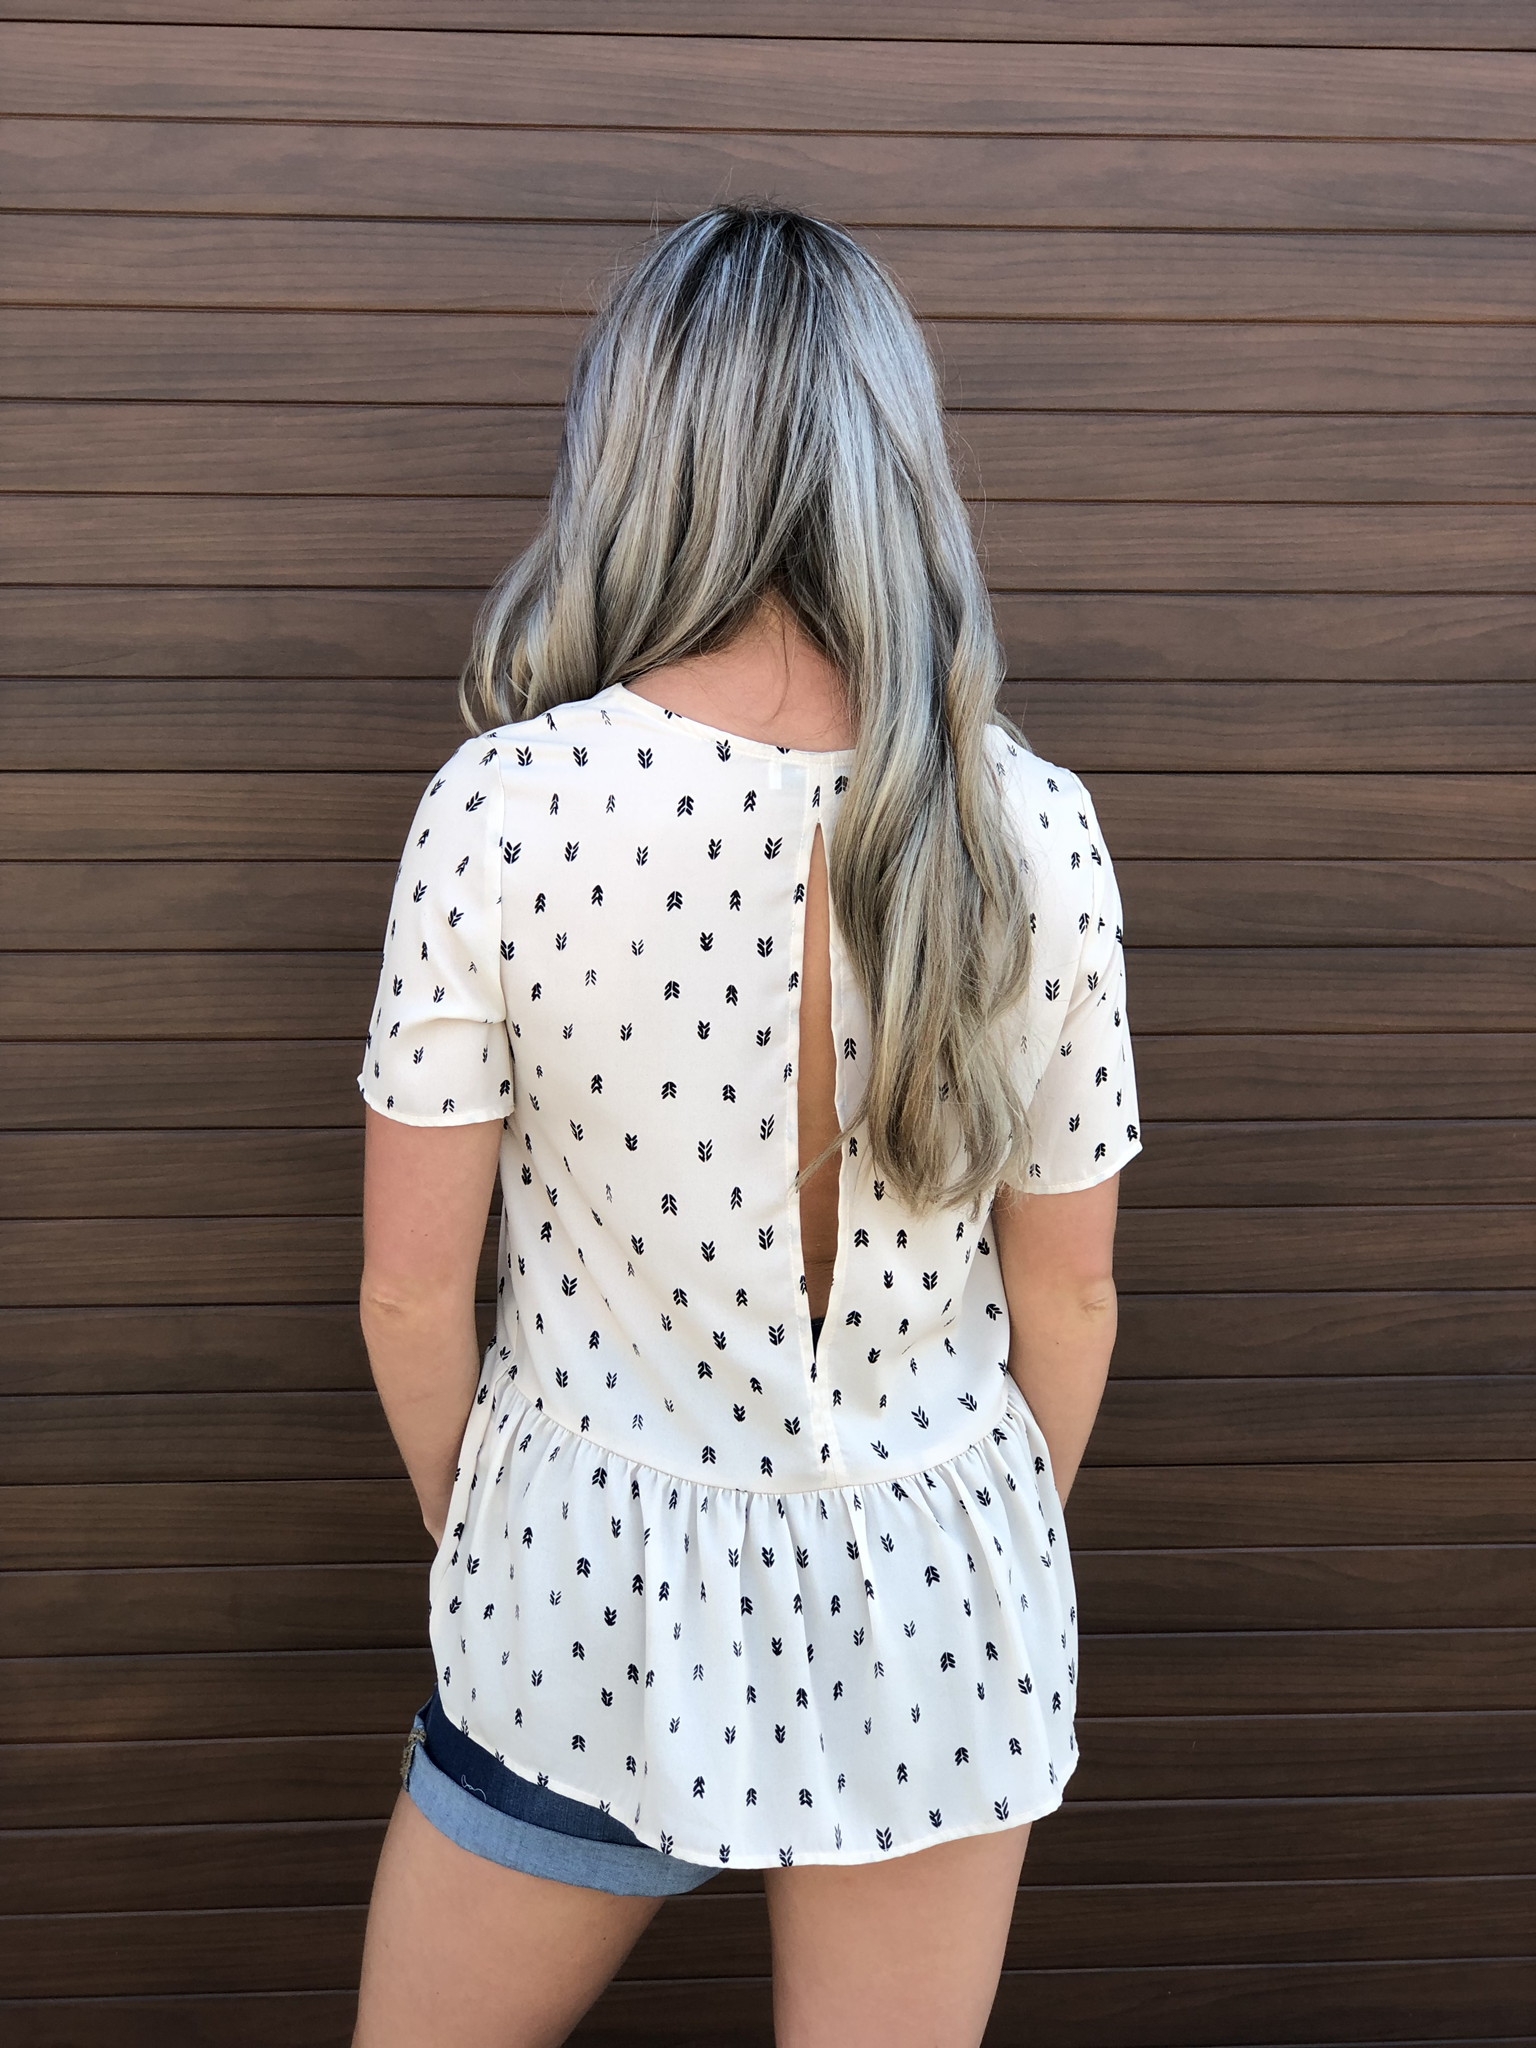 The Open Back Peplum Style Blouse